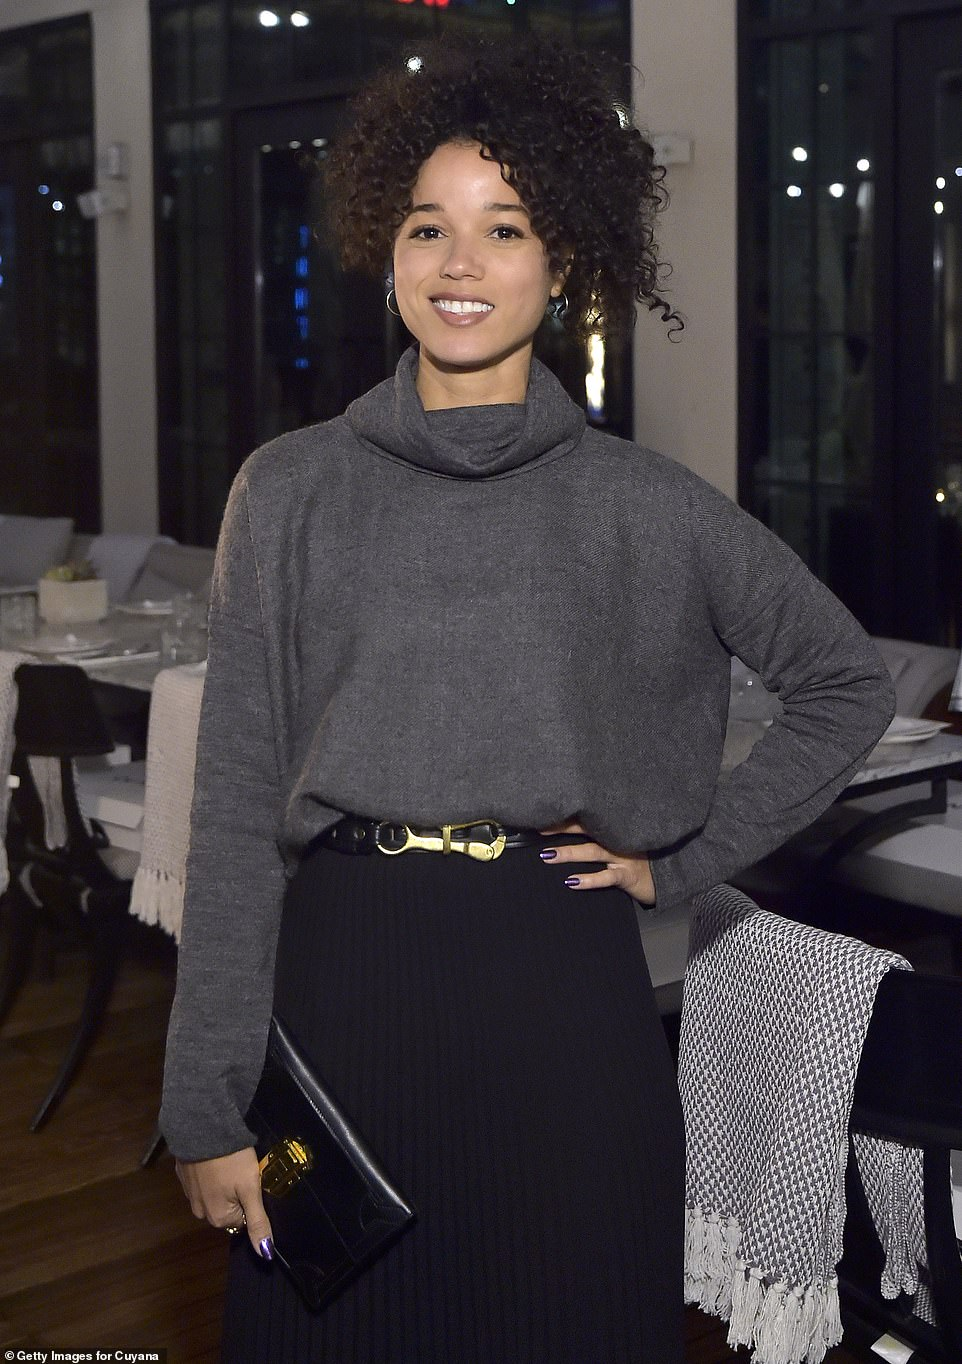 Rising star: Alisha is best known for a string of TV roles, including a major part on the Netflix series Raising Dion, though she's now making a break into film with her Palmer role [shown October 30]